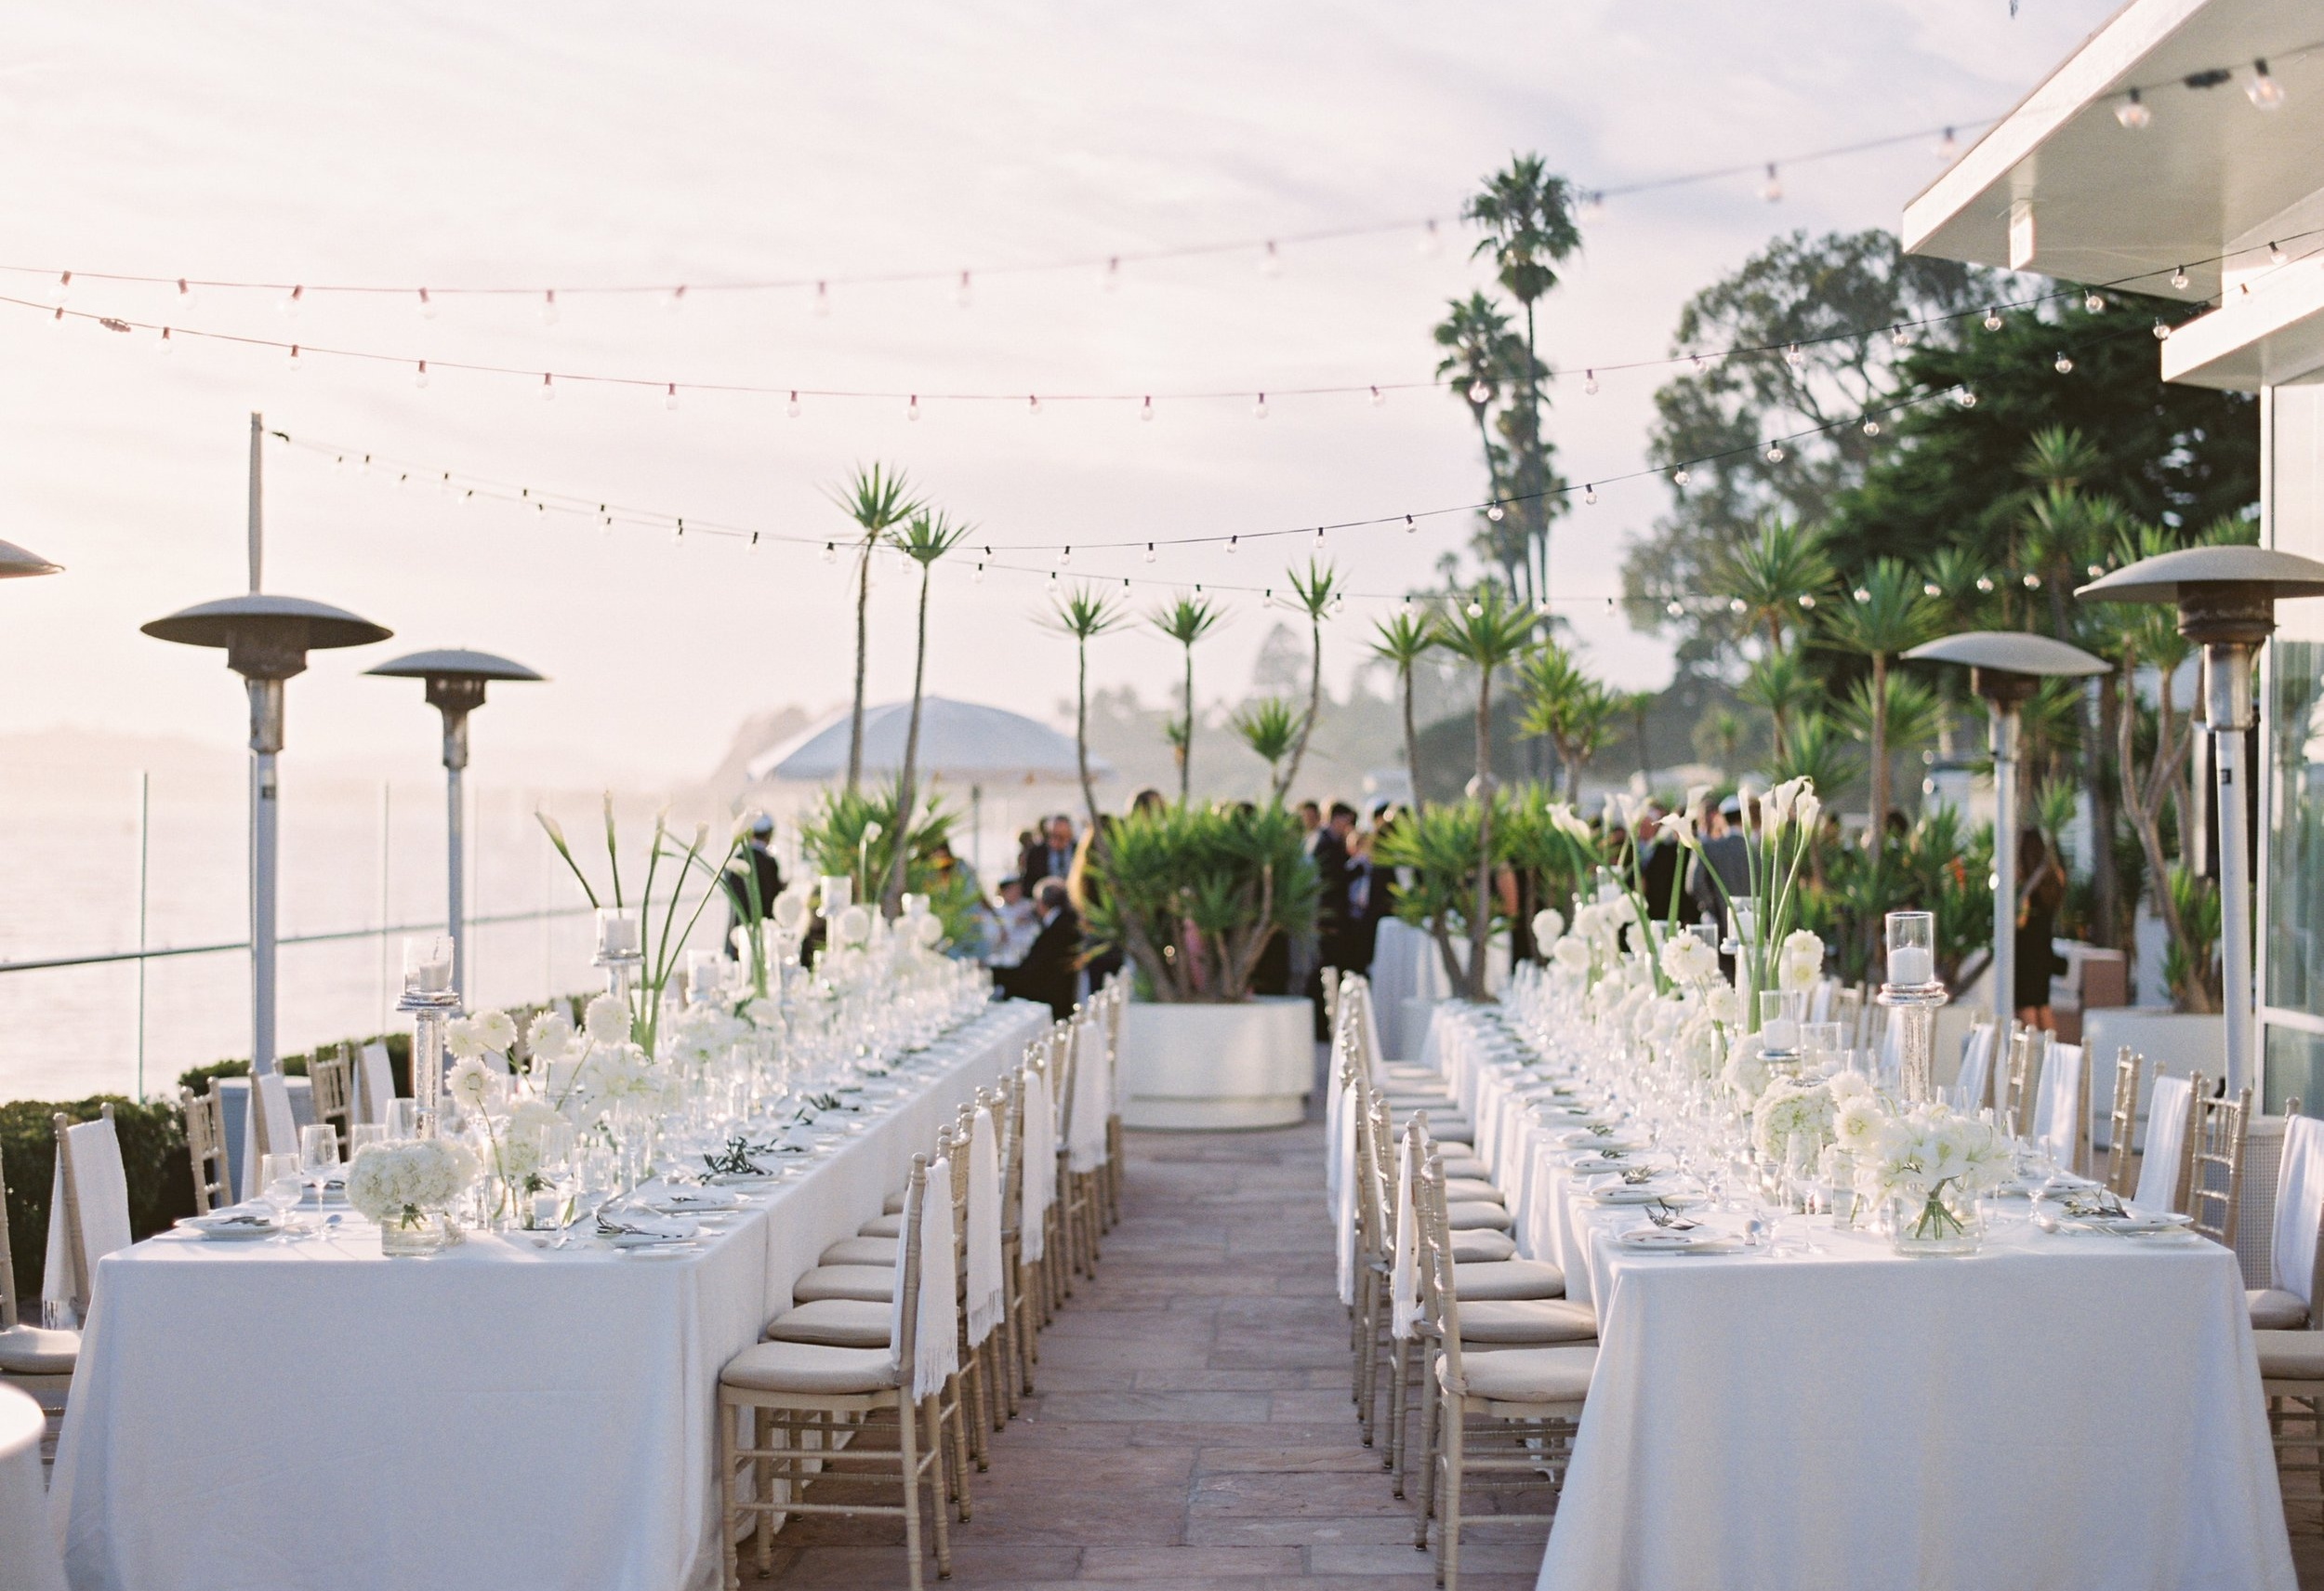 Coral Casino - Montecito Wedding - Michael and Anna Costa Photography